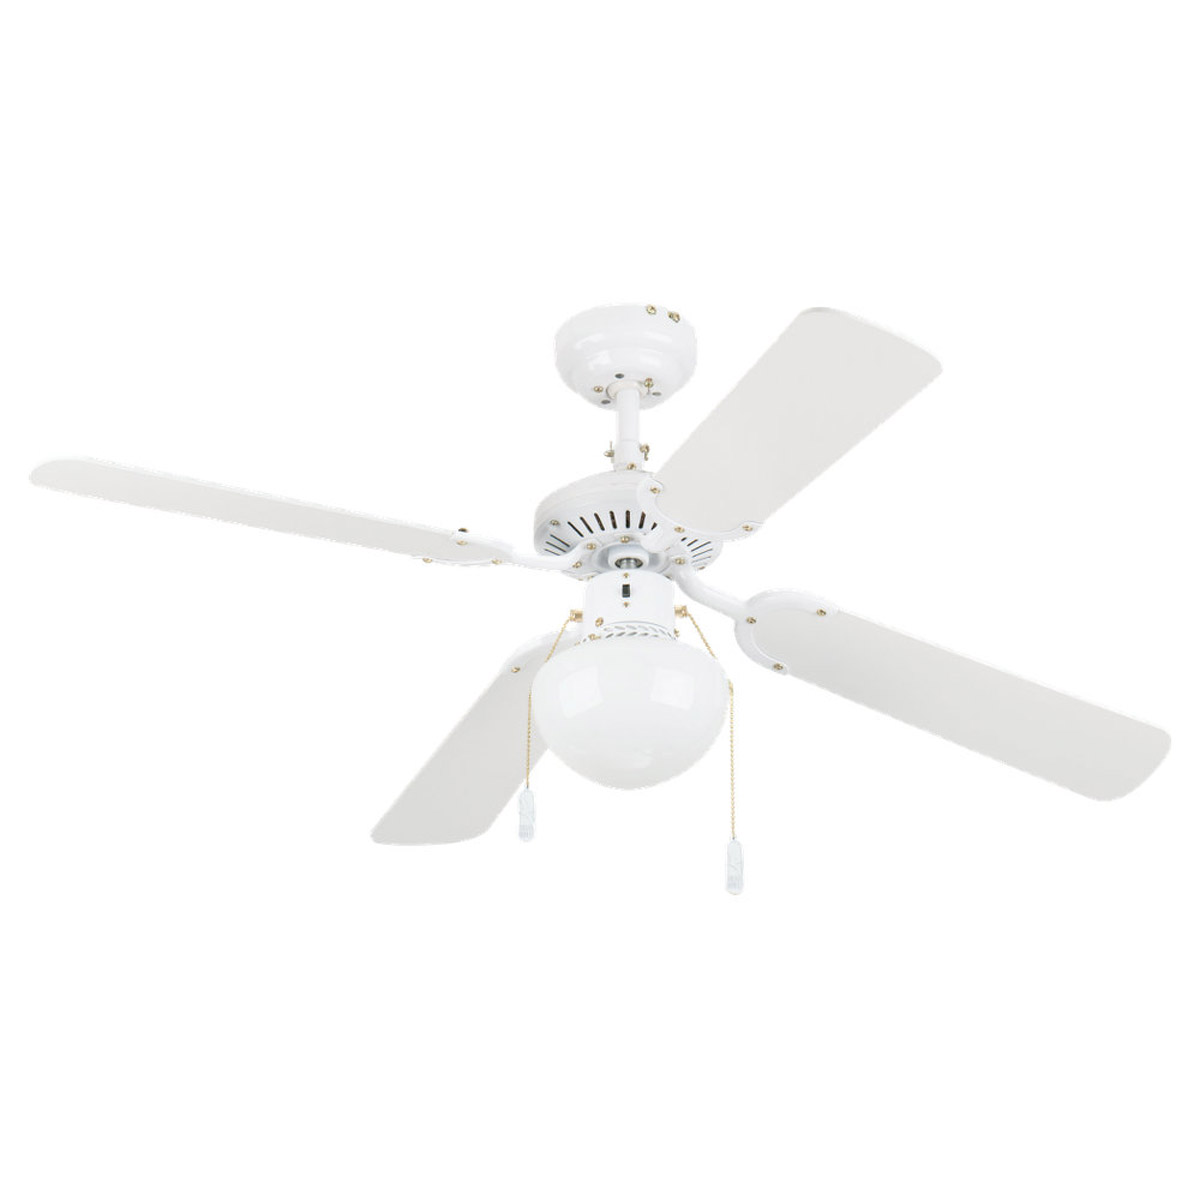 Sea Gull Lighting Hatteras Fans 1 Light Outdoor Ceiling Fan in White 15124BL-15 photo